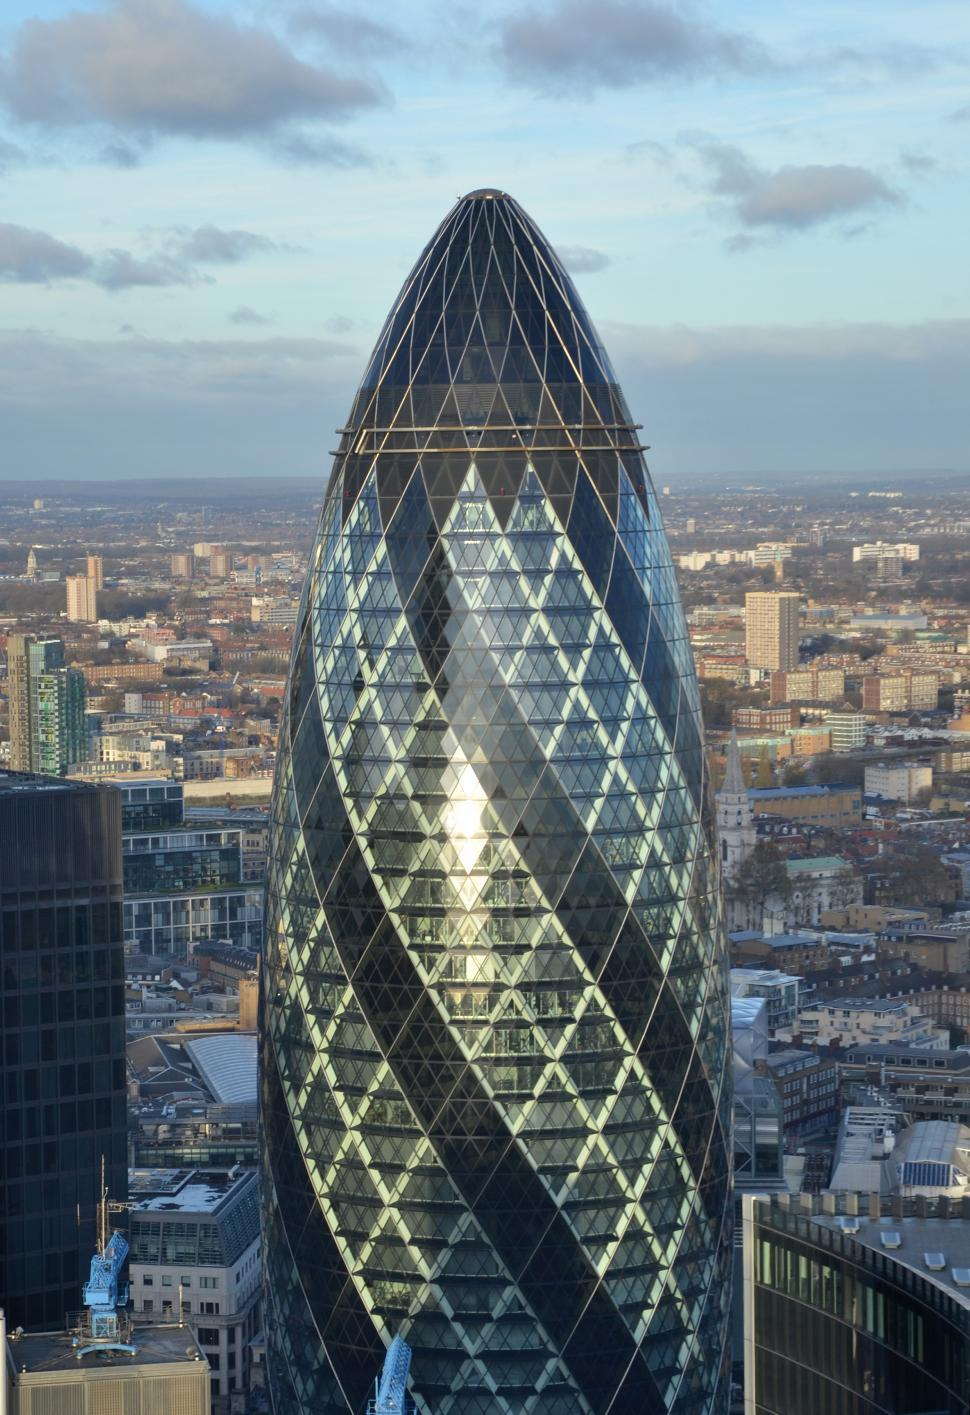 Download Free Stock Photo of The Gherkin